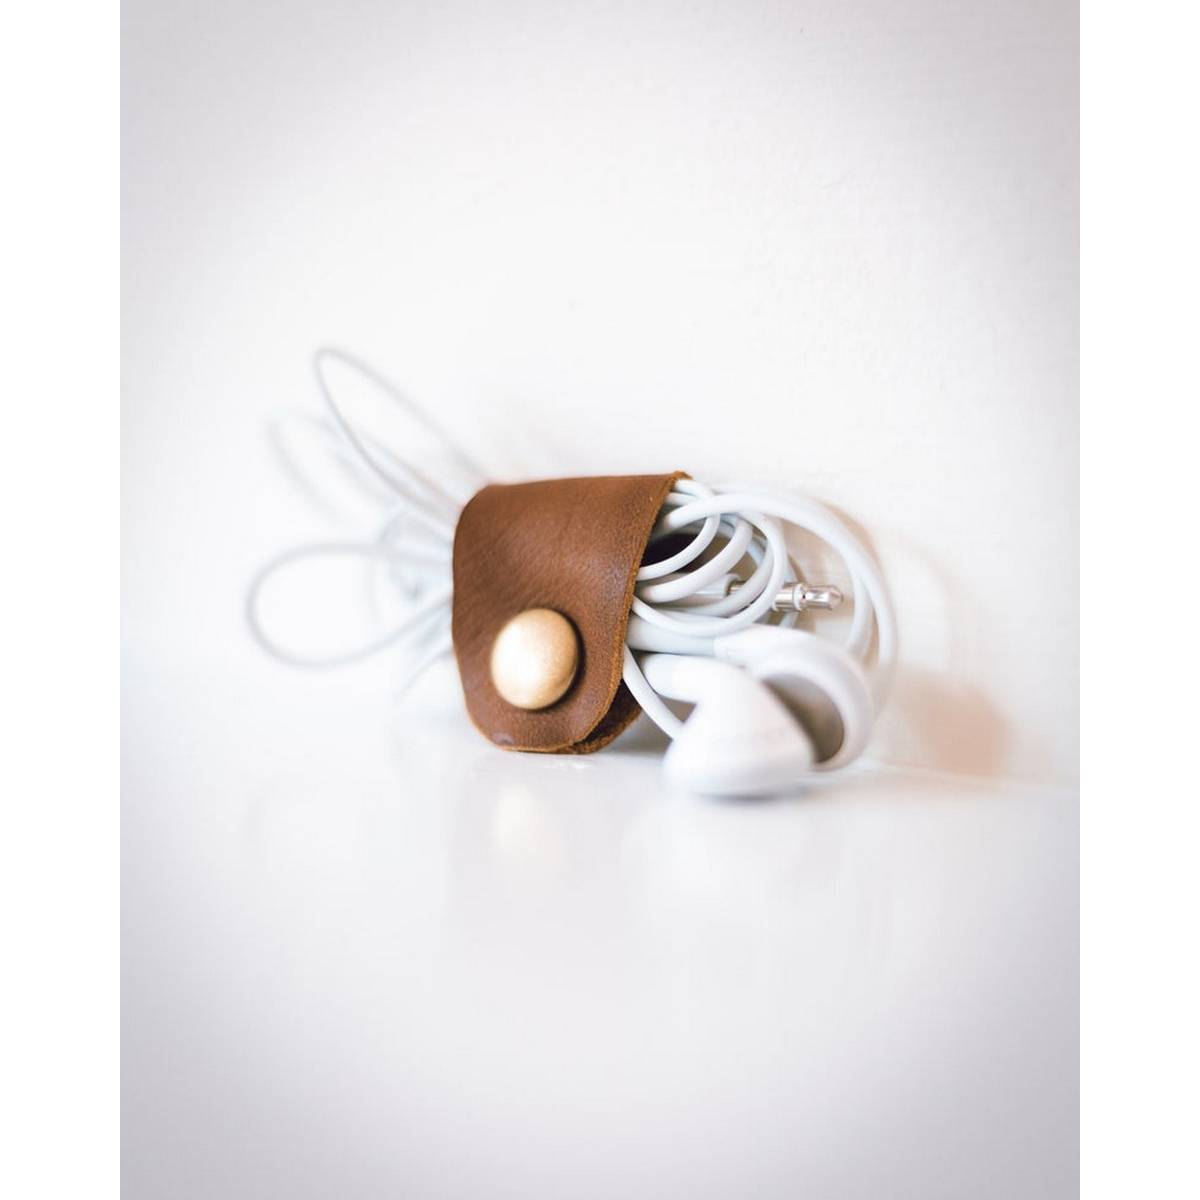 Leather handfree holder Cable organizer with snap Closure - Brown